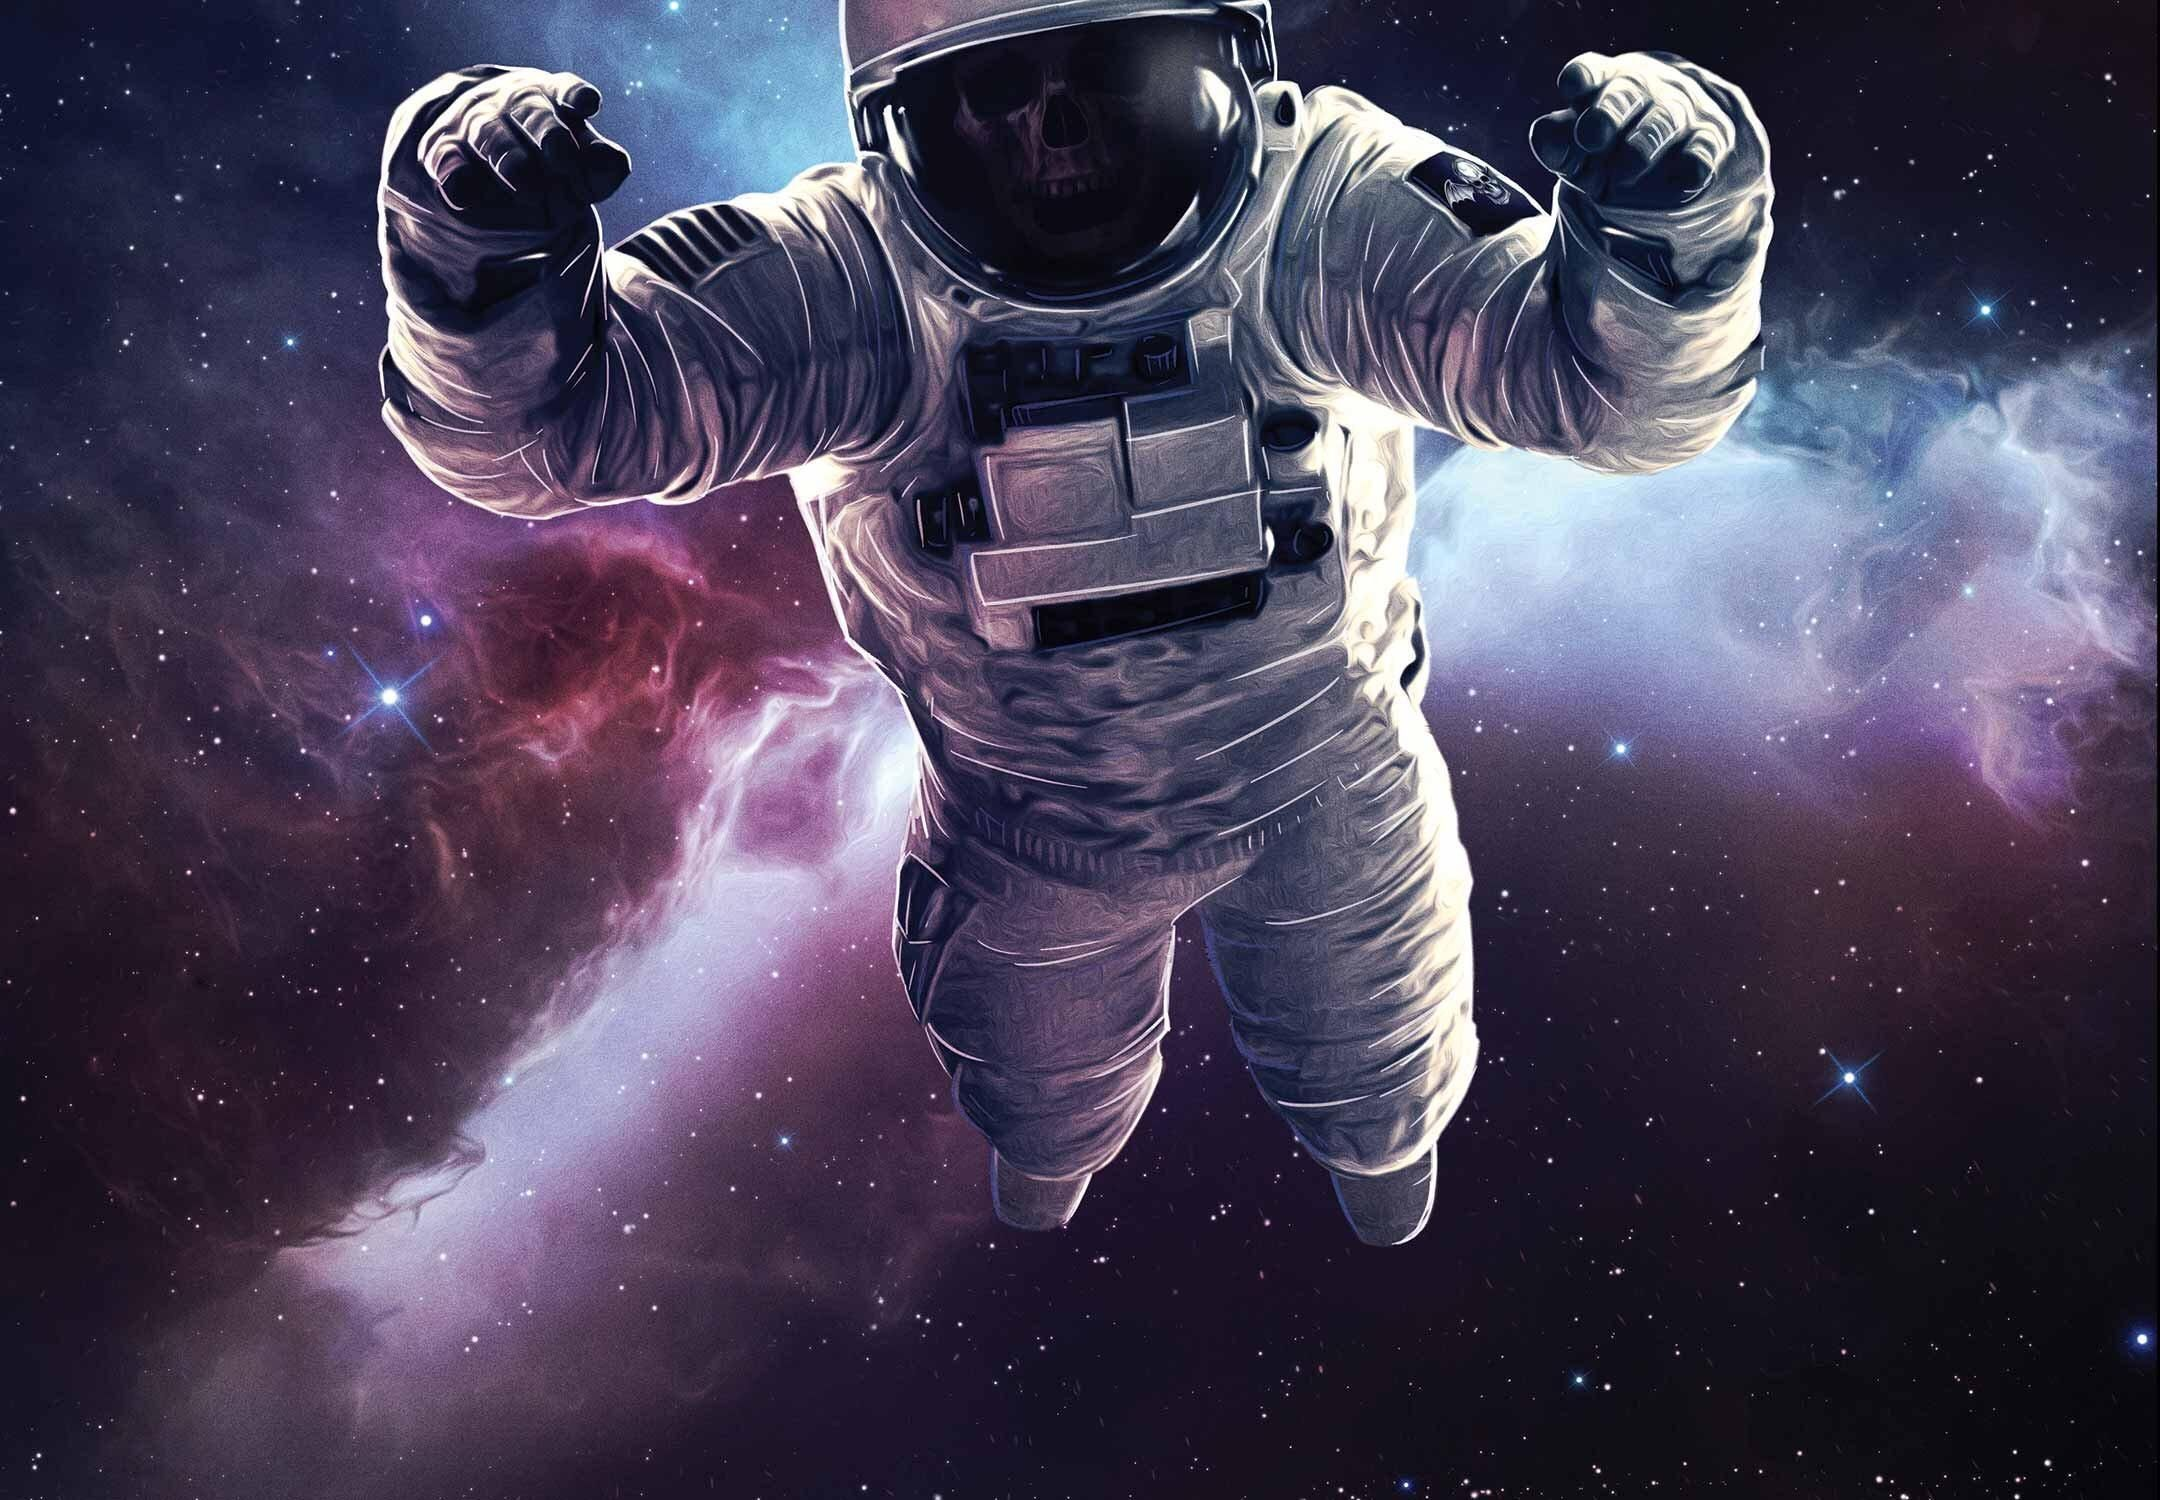 Avenged Sevenfold The Stage Album Astronaut Avenged Sevenfold Avenged Sevenfold Wallpapers Women In History